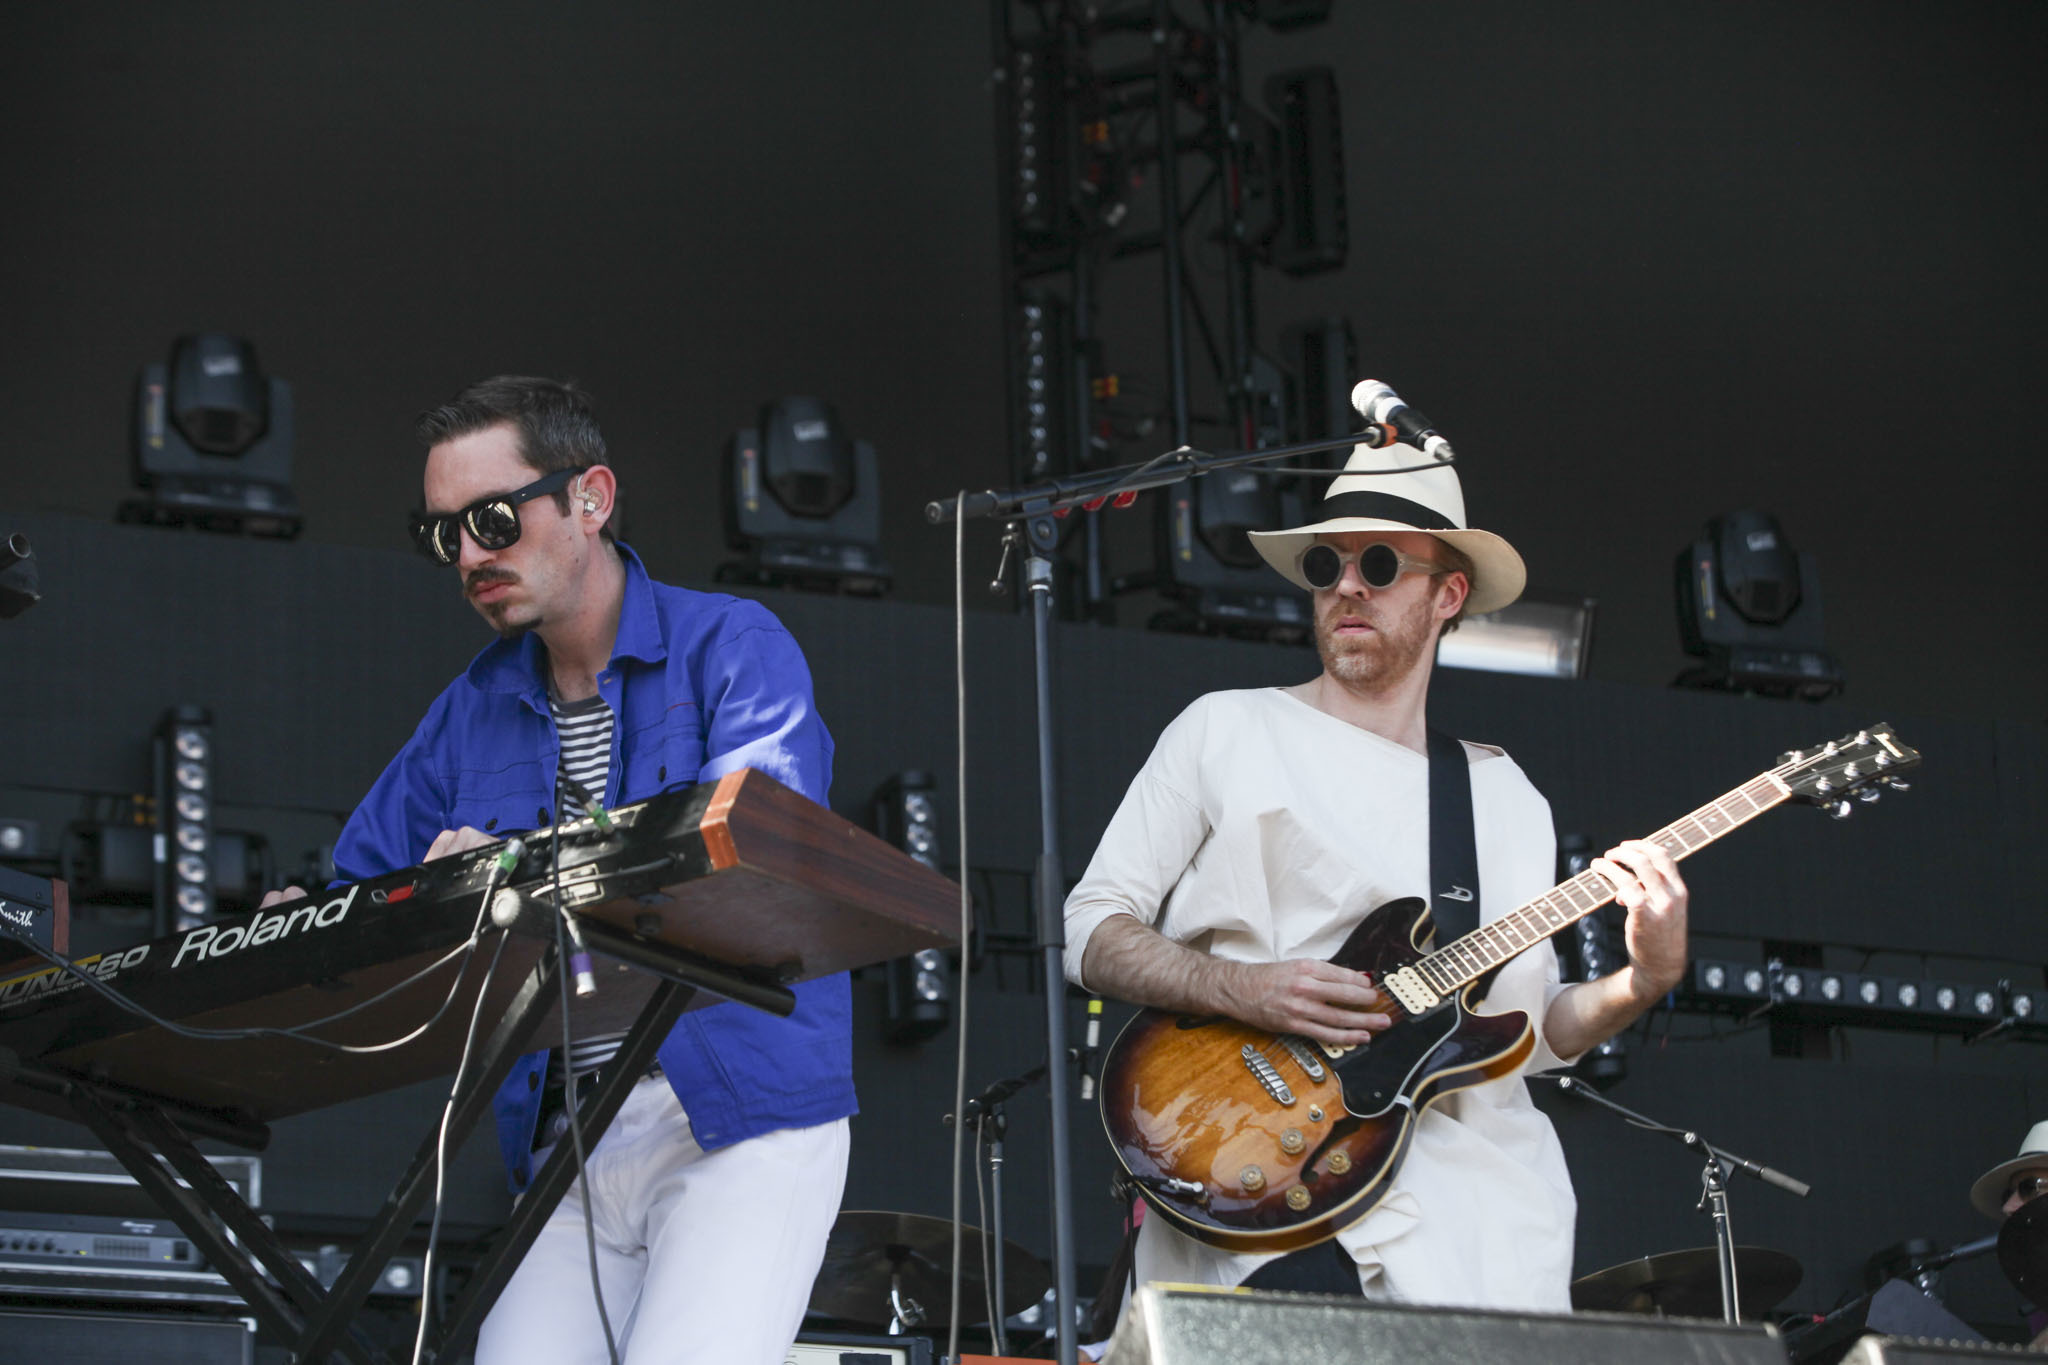 Hot Chip played to an enthusiastic audience during the first day of Lollapalooza on July 31, 2015.